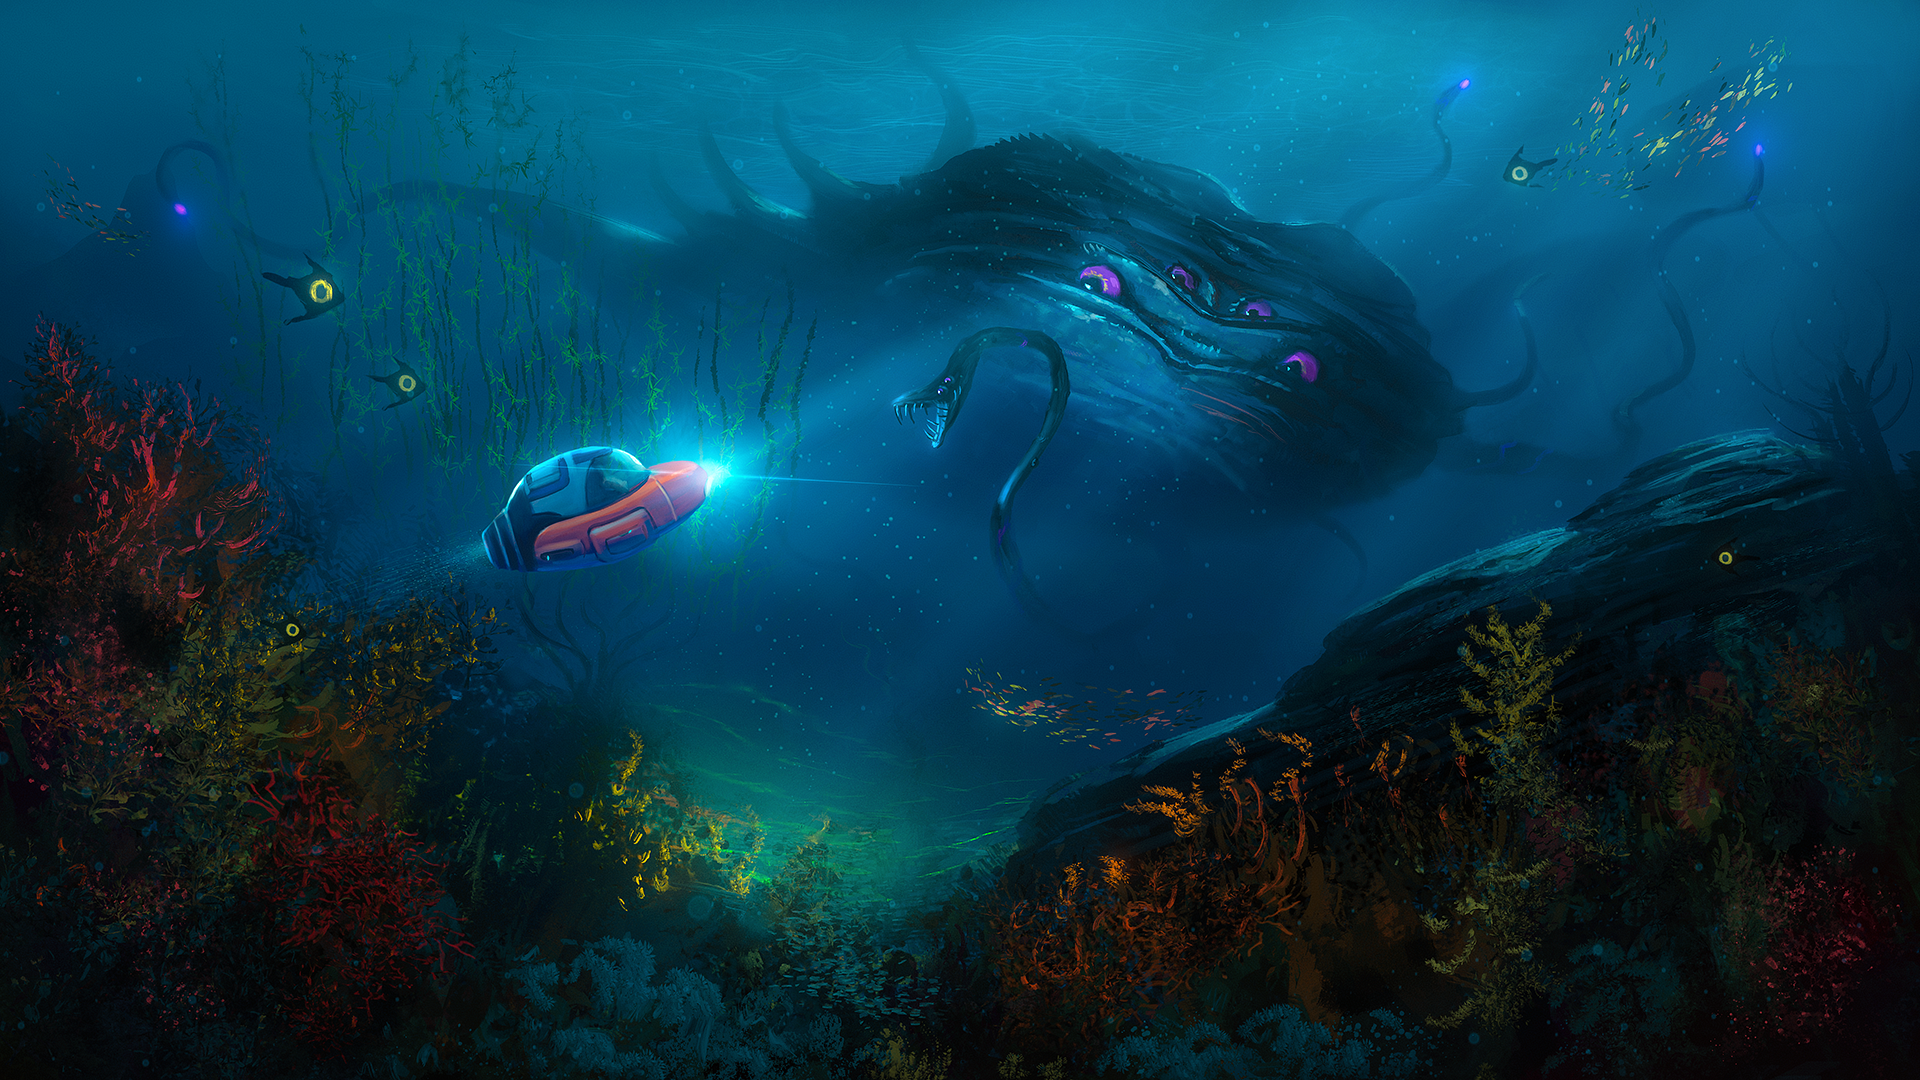 General 1920x1080 water underwater plants submarine subnautica sea monsters video games fan art video game art lights fish coral snake fantasy art Rafael Damiani colorful creature sea